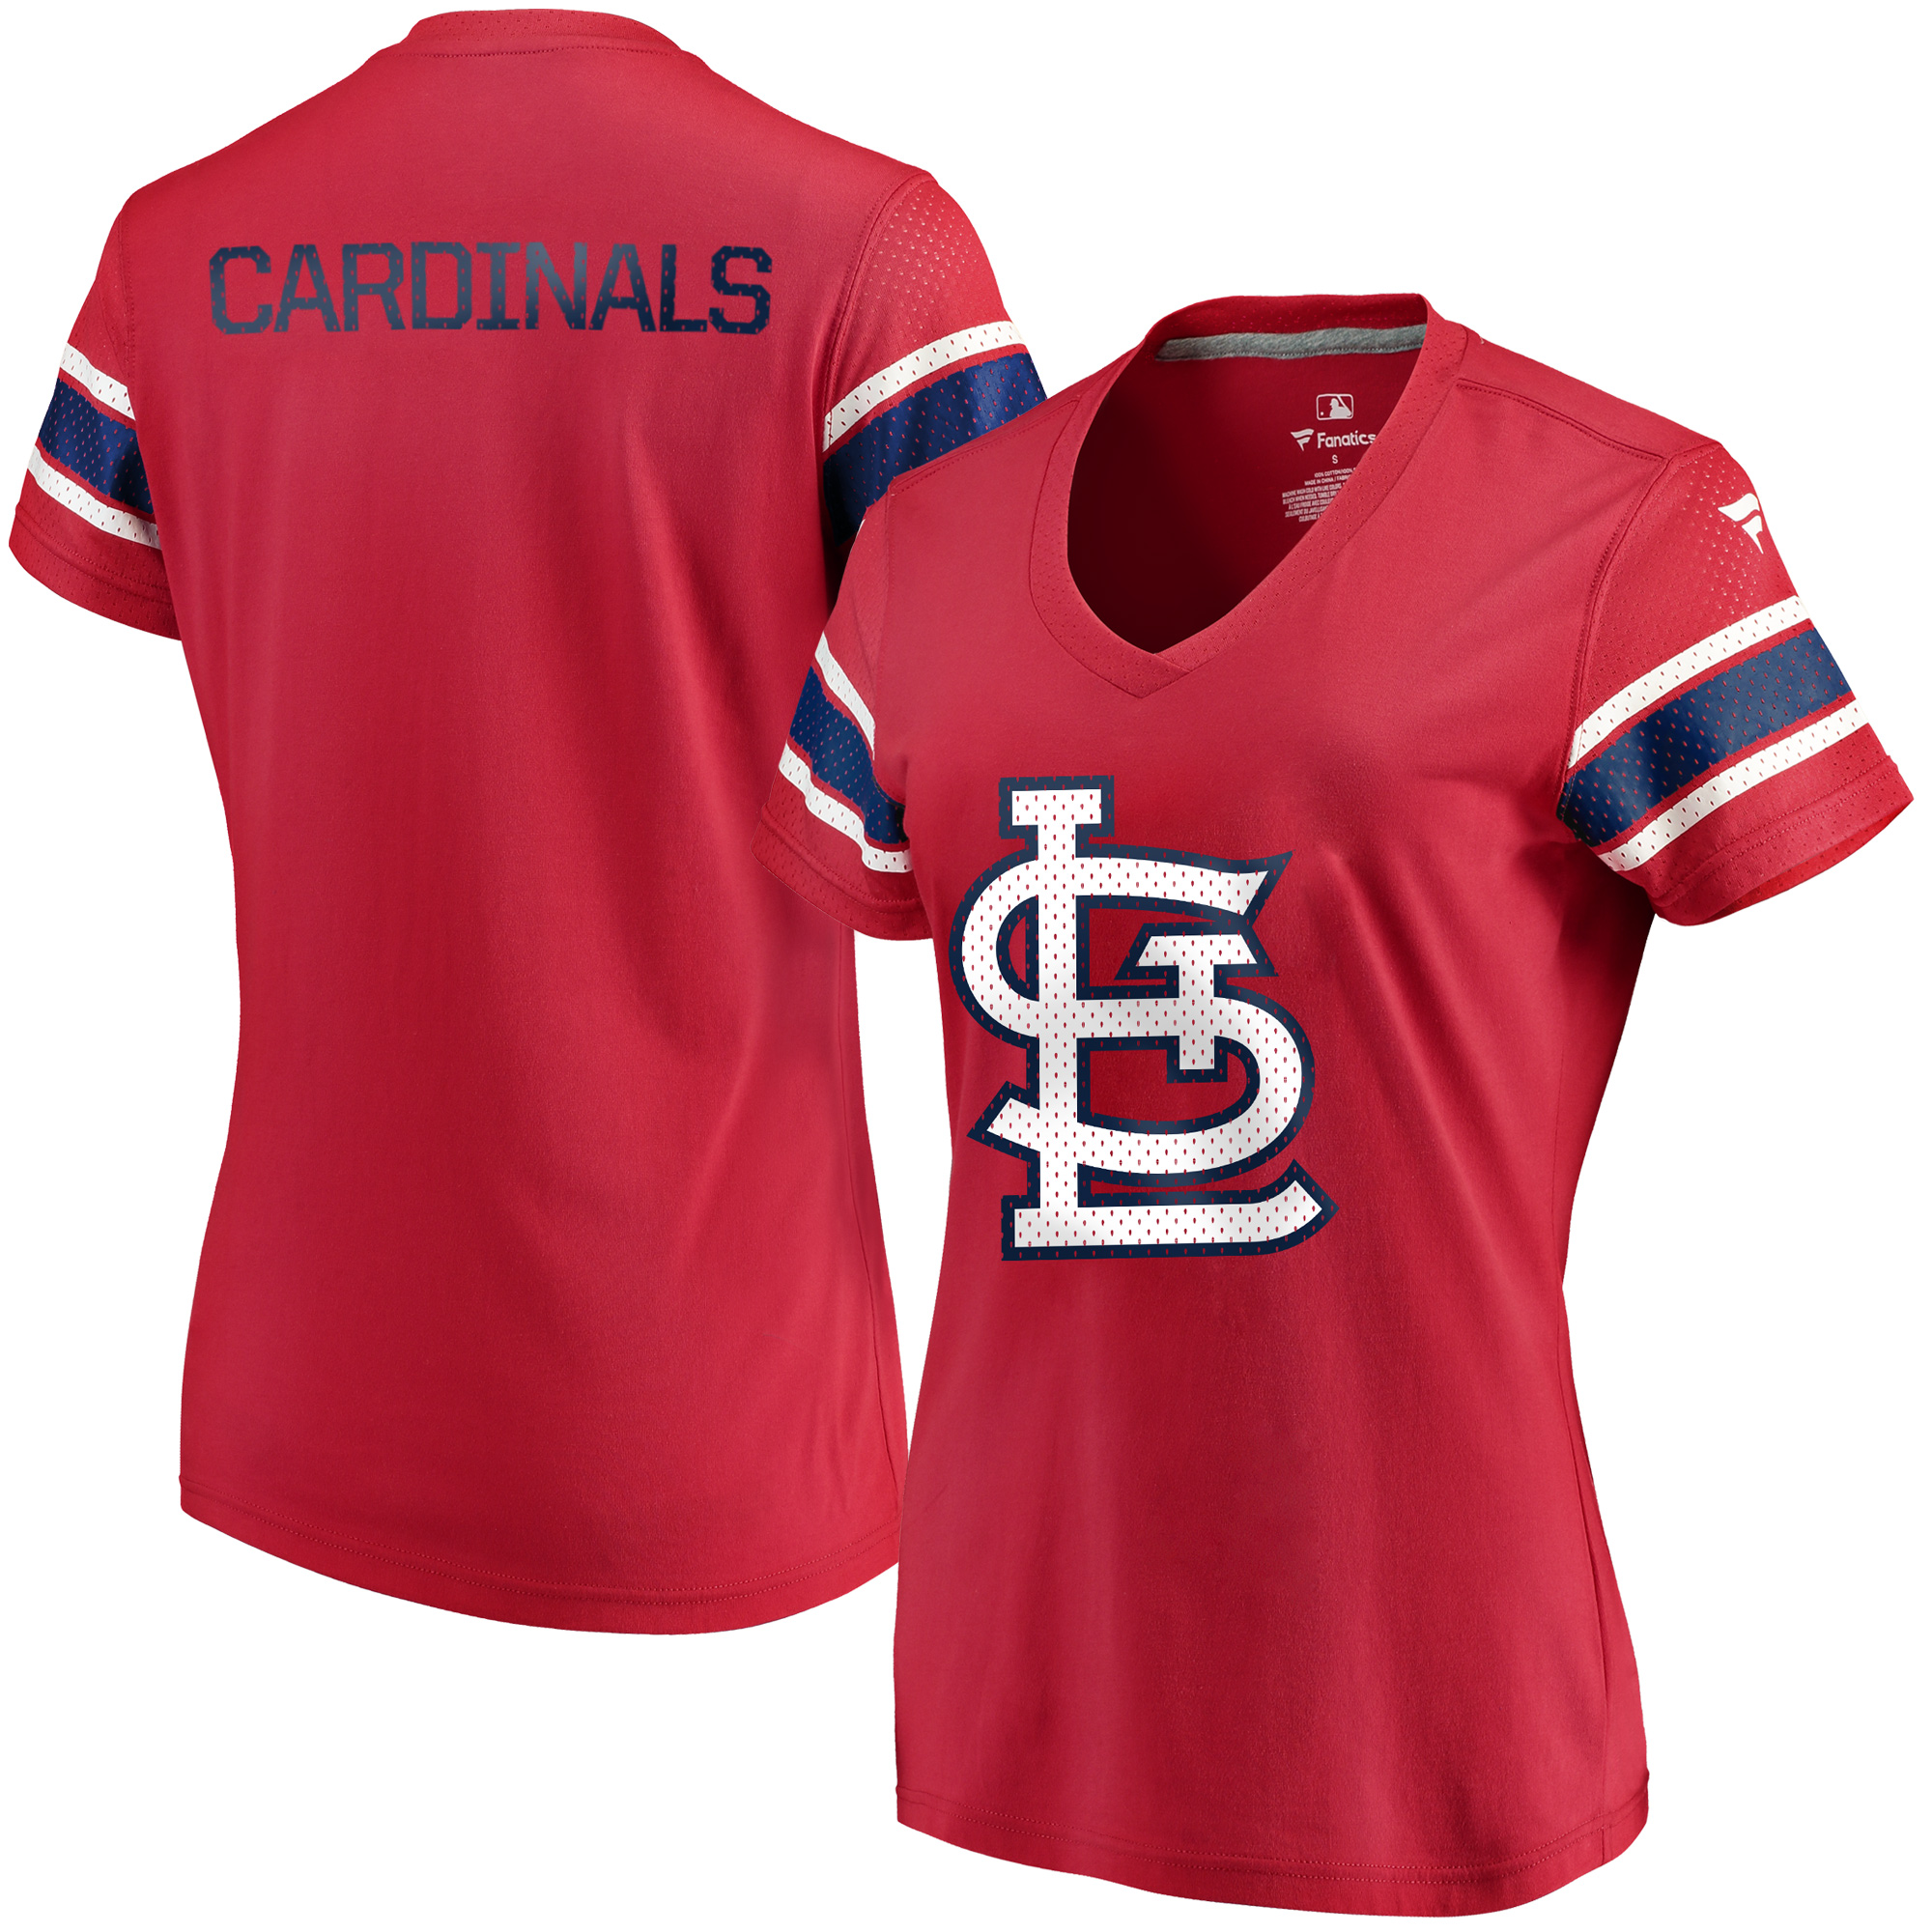 St. Louis Cardinals Fanatics Branded Women's Iconic V-Neck T-Shirt - Red